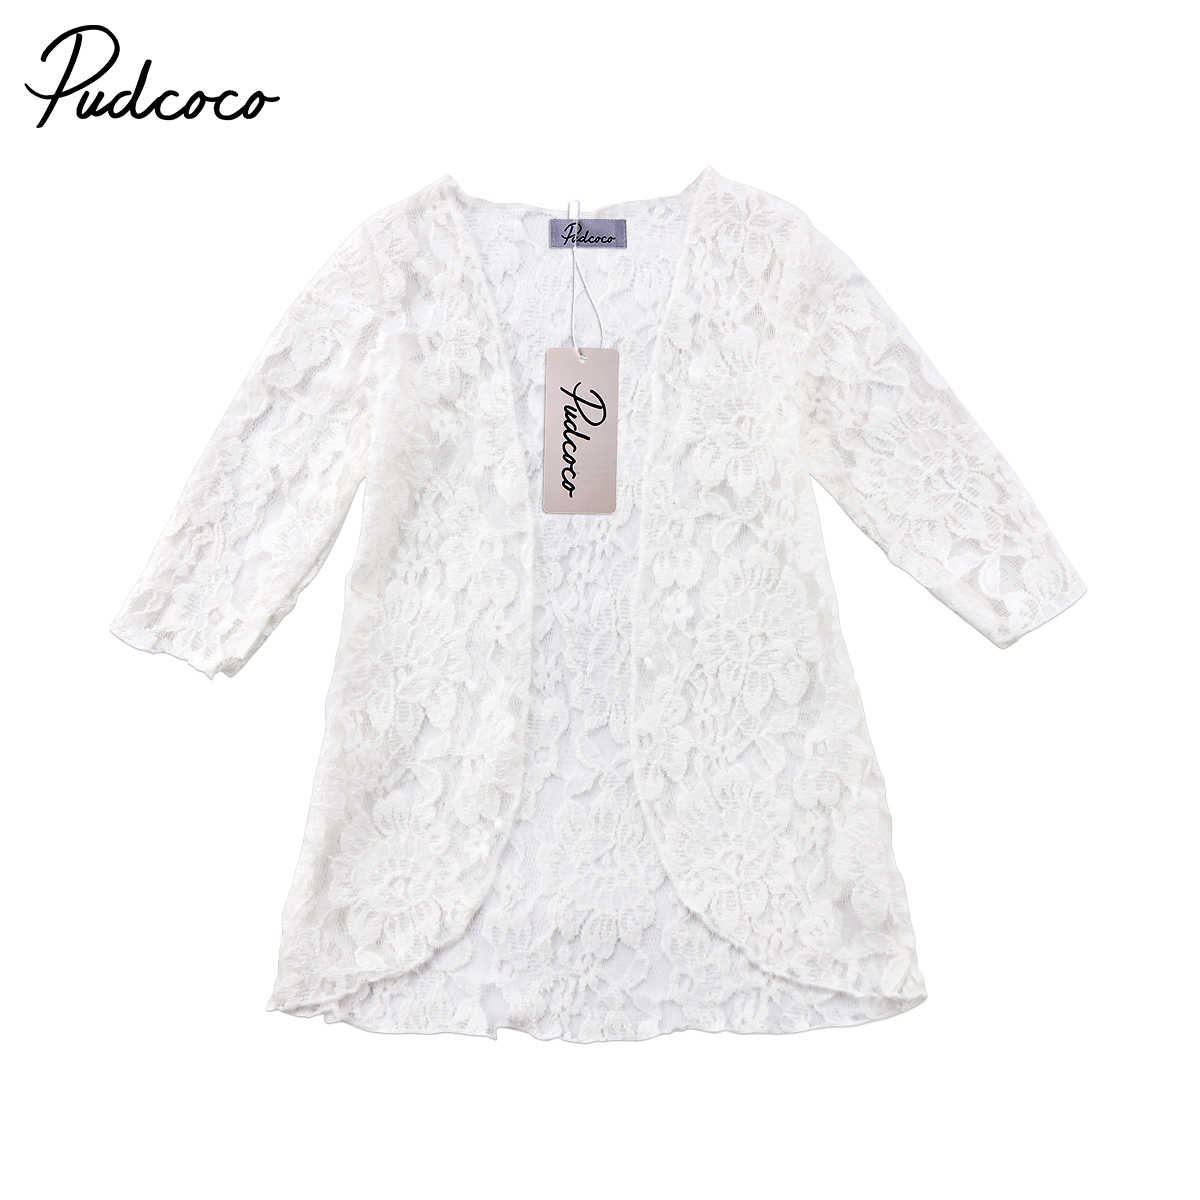 2018 Brand New Toddler Infant Child Kids Baby Girl Lace Floral Sunscreen Beach Dress Rashguard Clothes Cover Outerwear 6M-5T